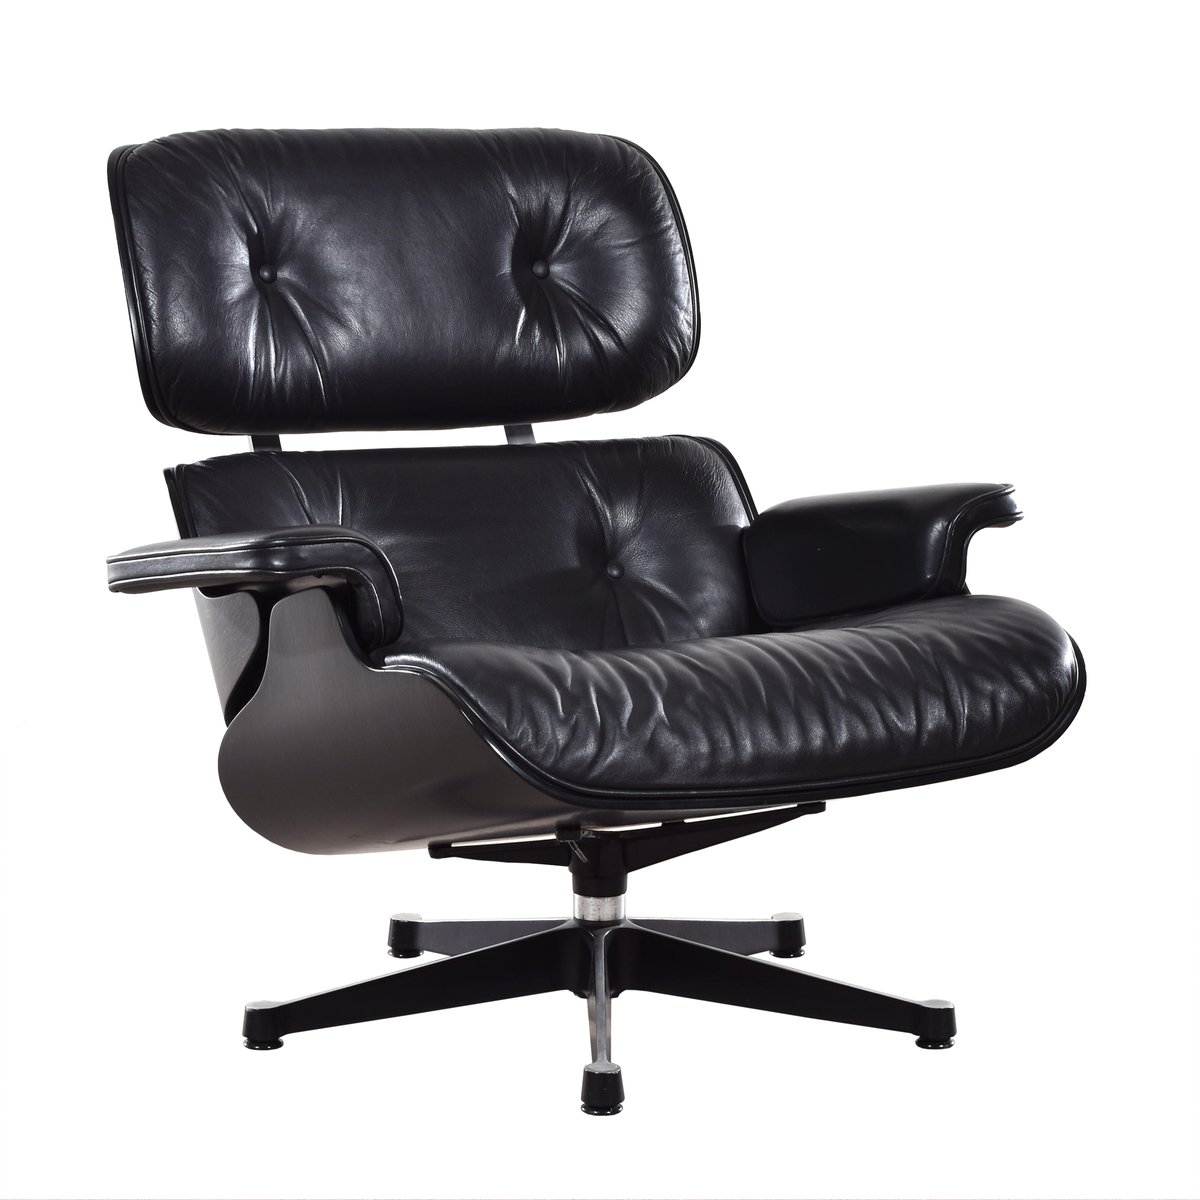 german lounge chair by charles ray eames for vitra 1988 for sale at pamono. Black Bedroom Furniture Sets. Home Design Ideas